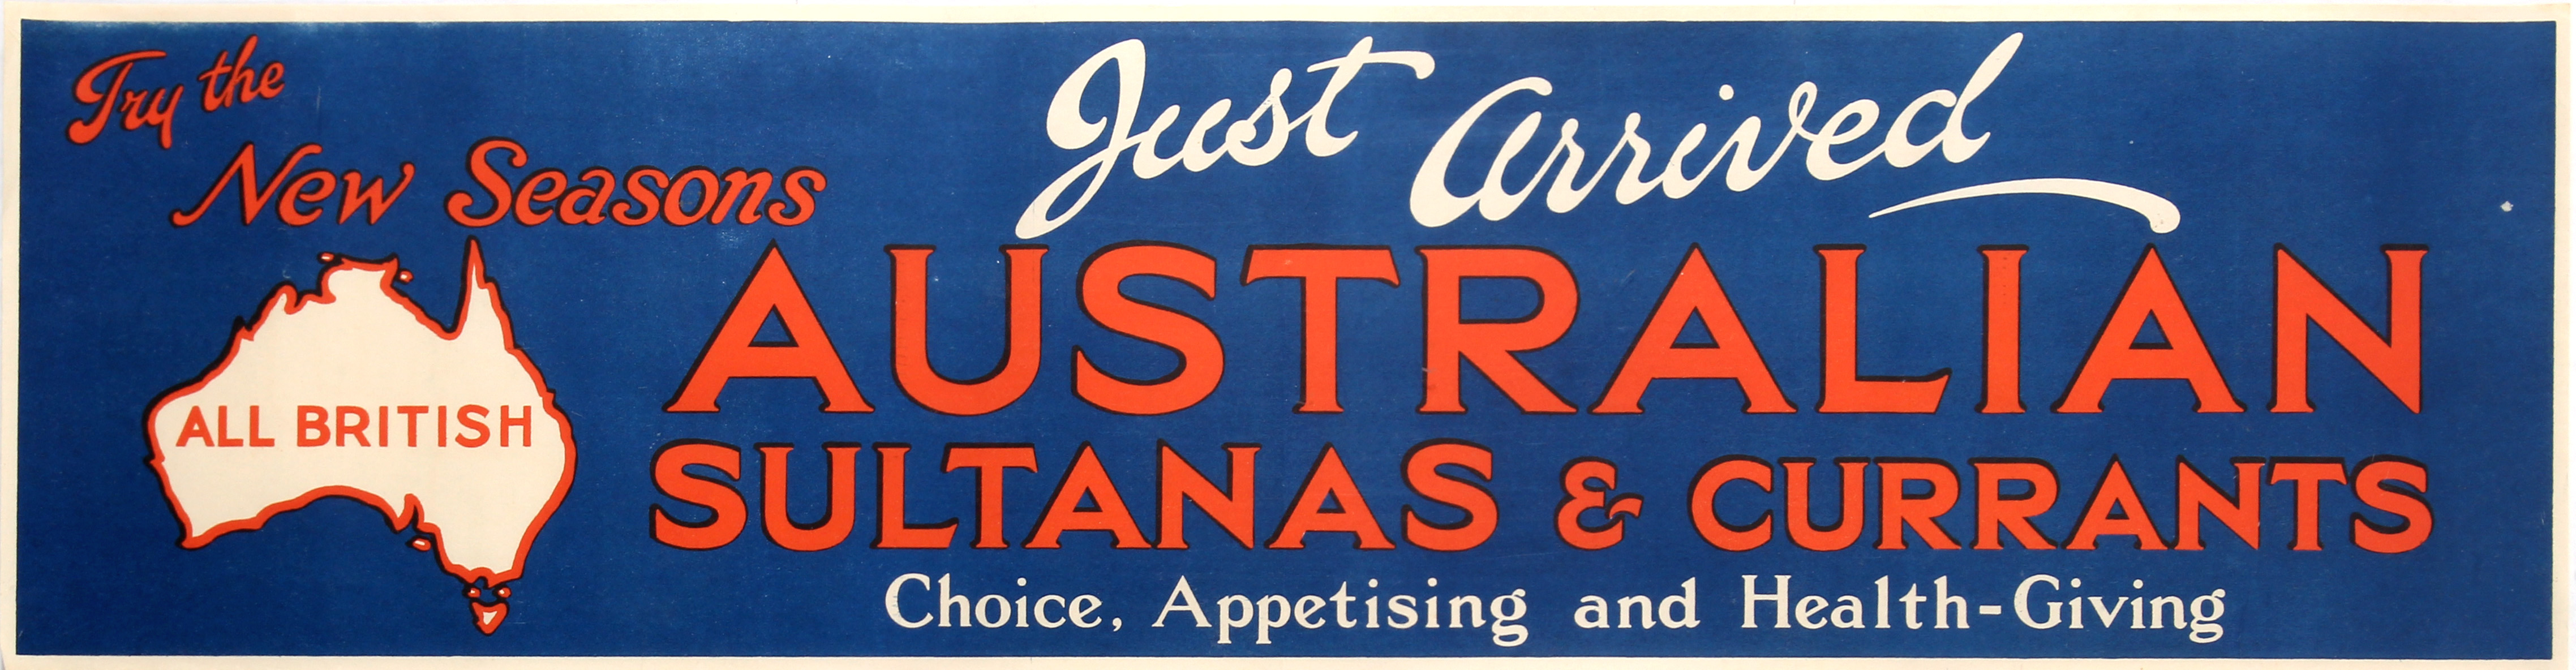 Advertising Poster Australian Sultanas Currants